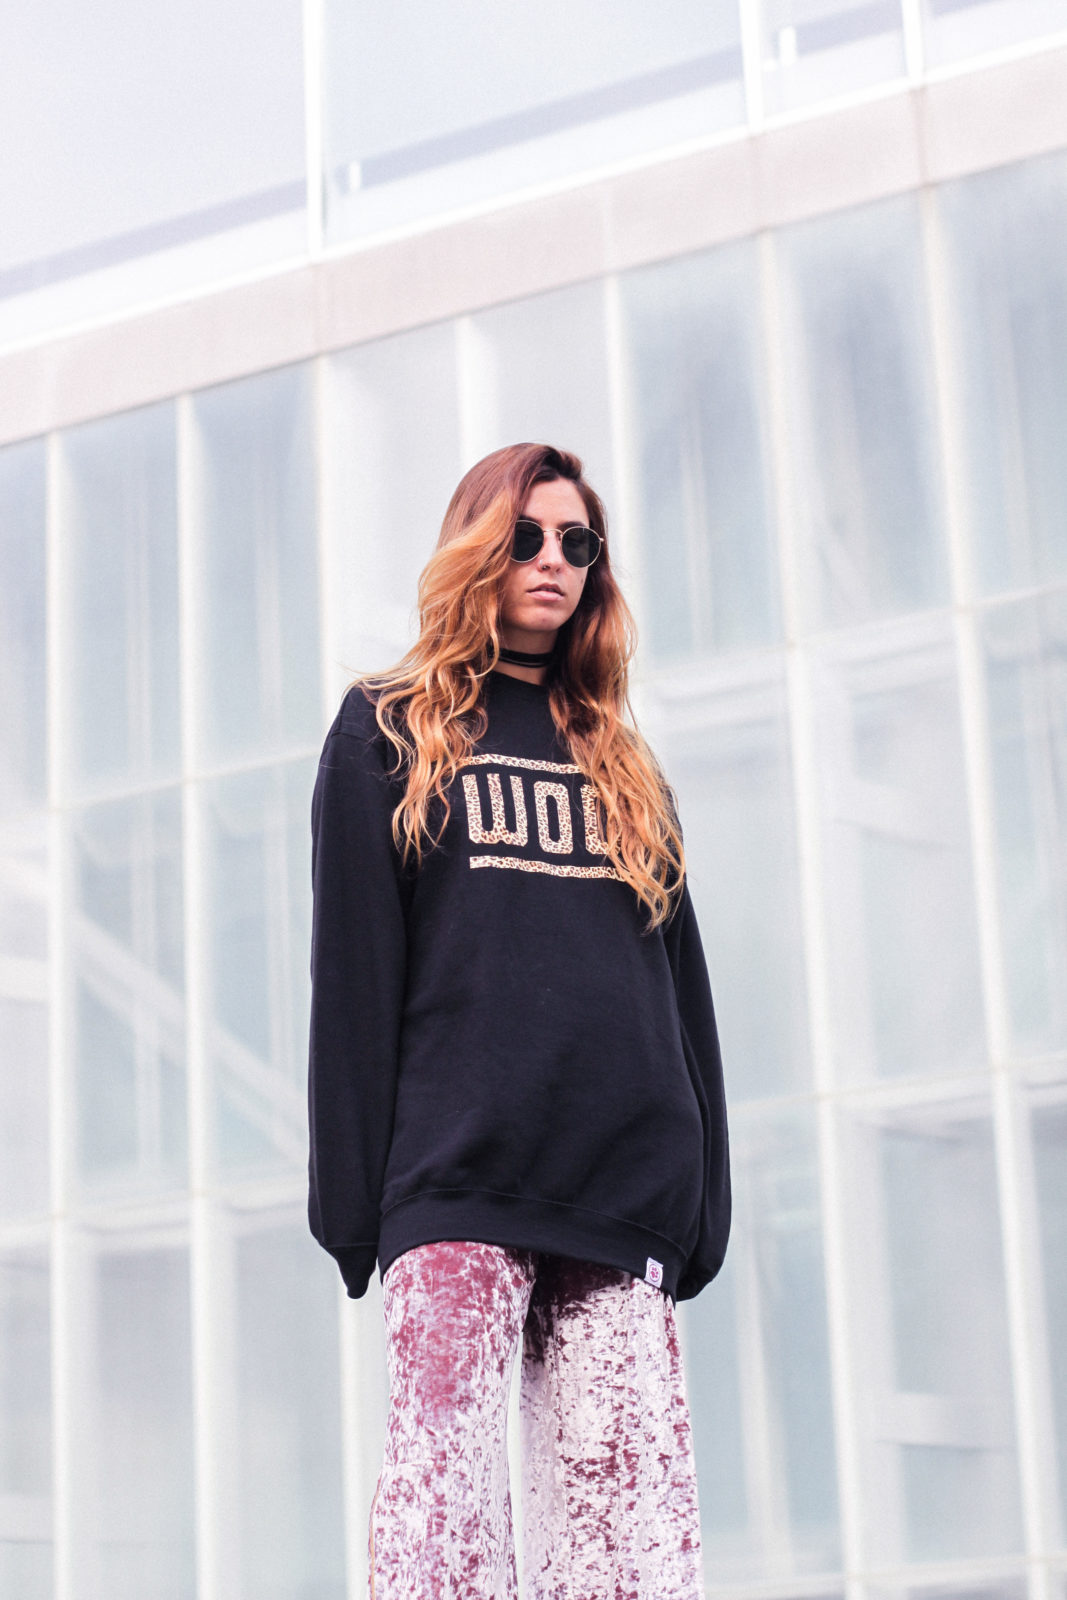 sudadera_woof_old_dogs_pantalones_terciopelo_rosa_botines_blancos_sweatshirt_oversize_choker_calcetines_rejilla_tendencias_2016_fall_trends_street_style_donkeycool-45